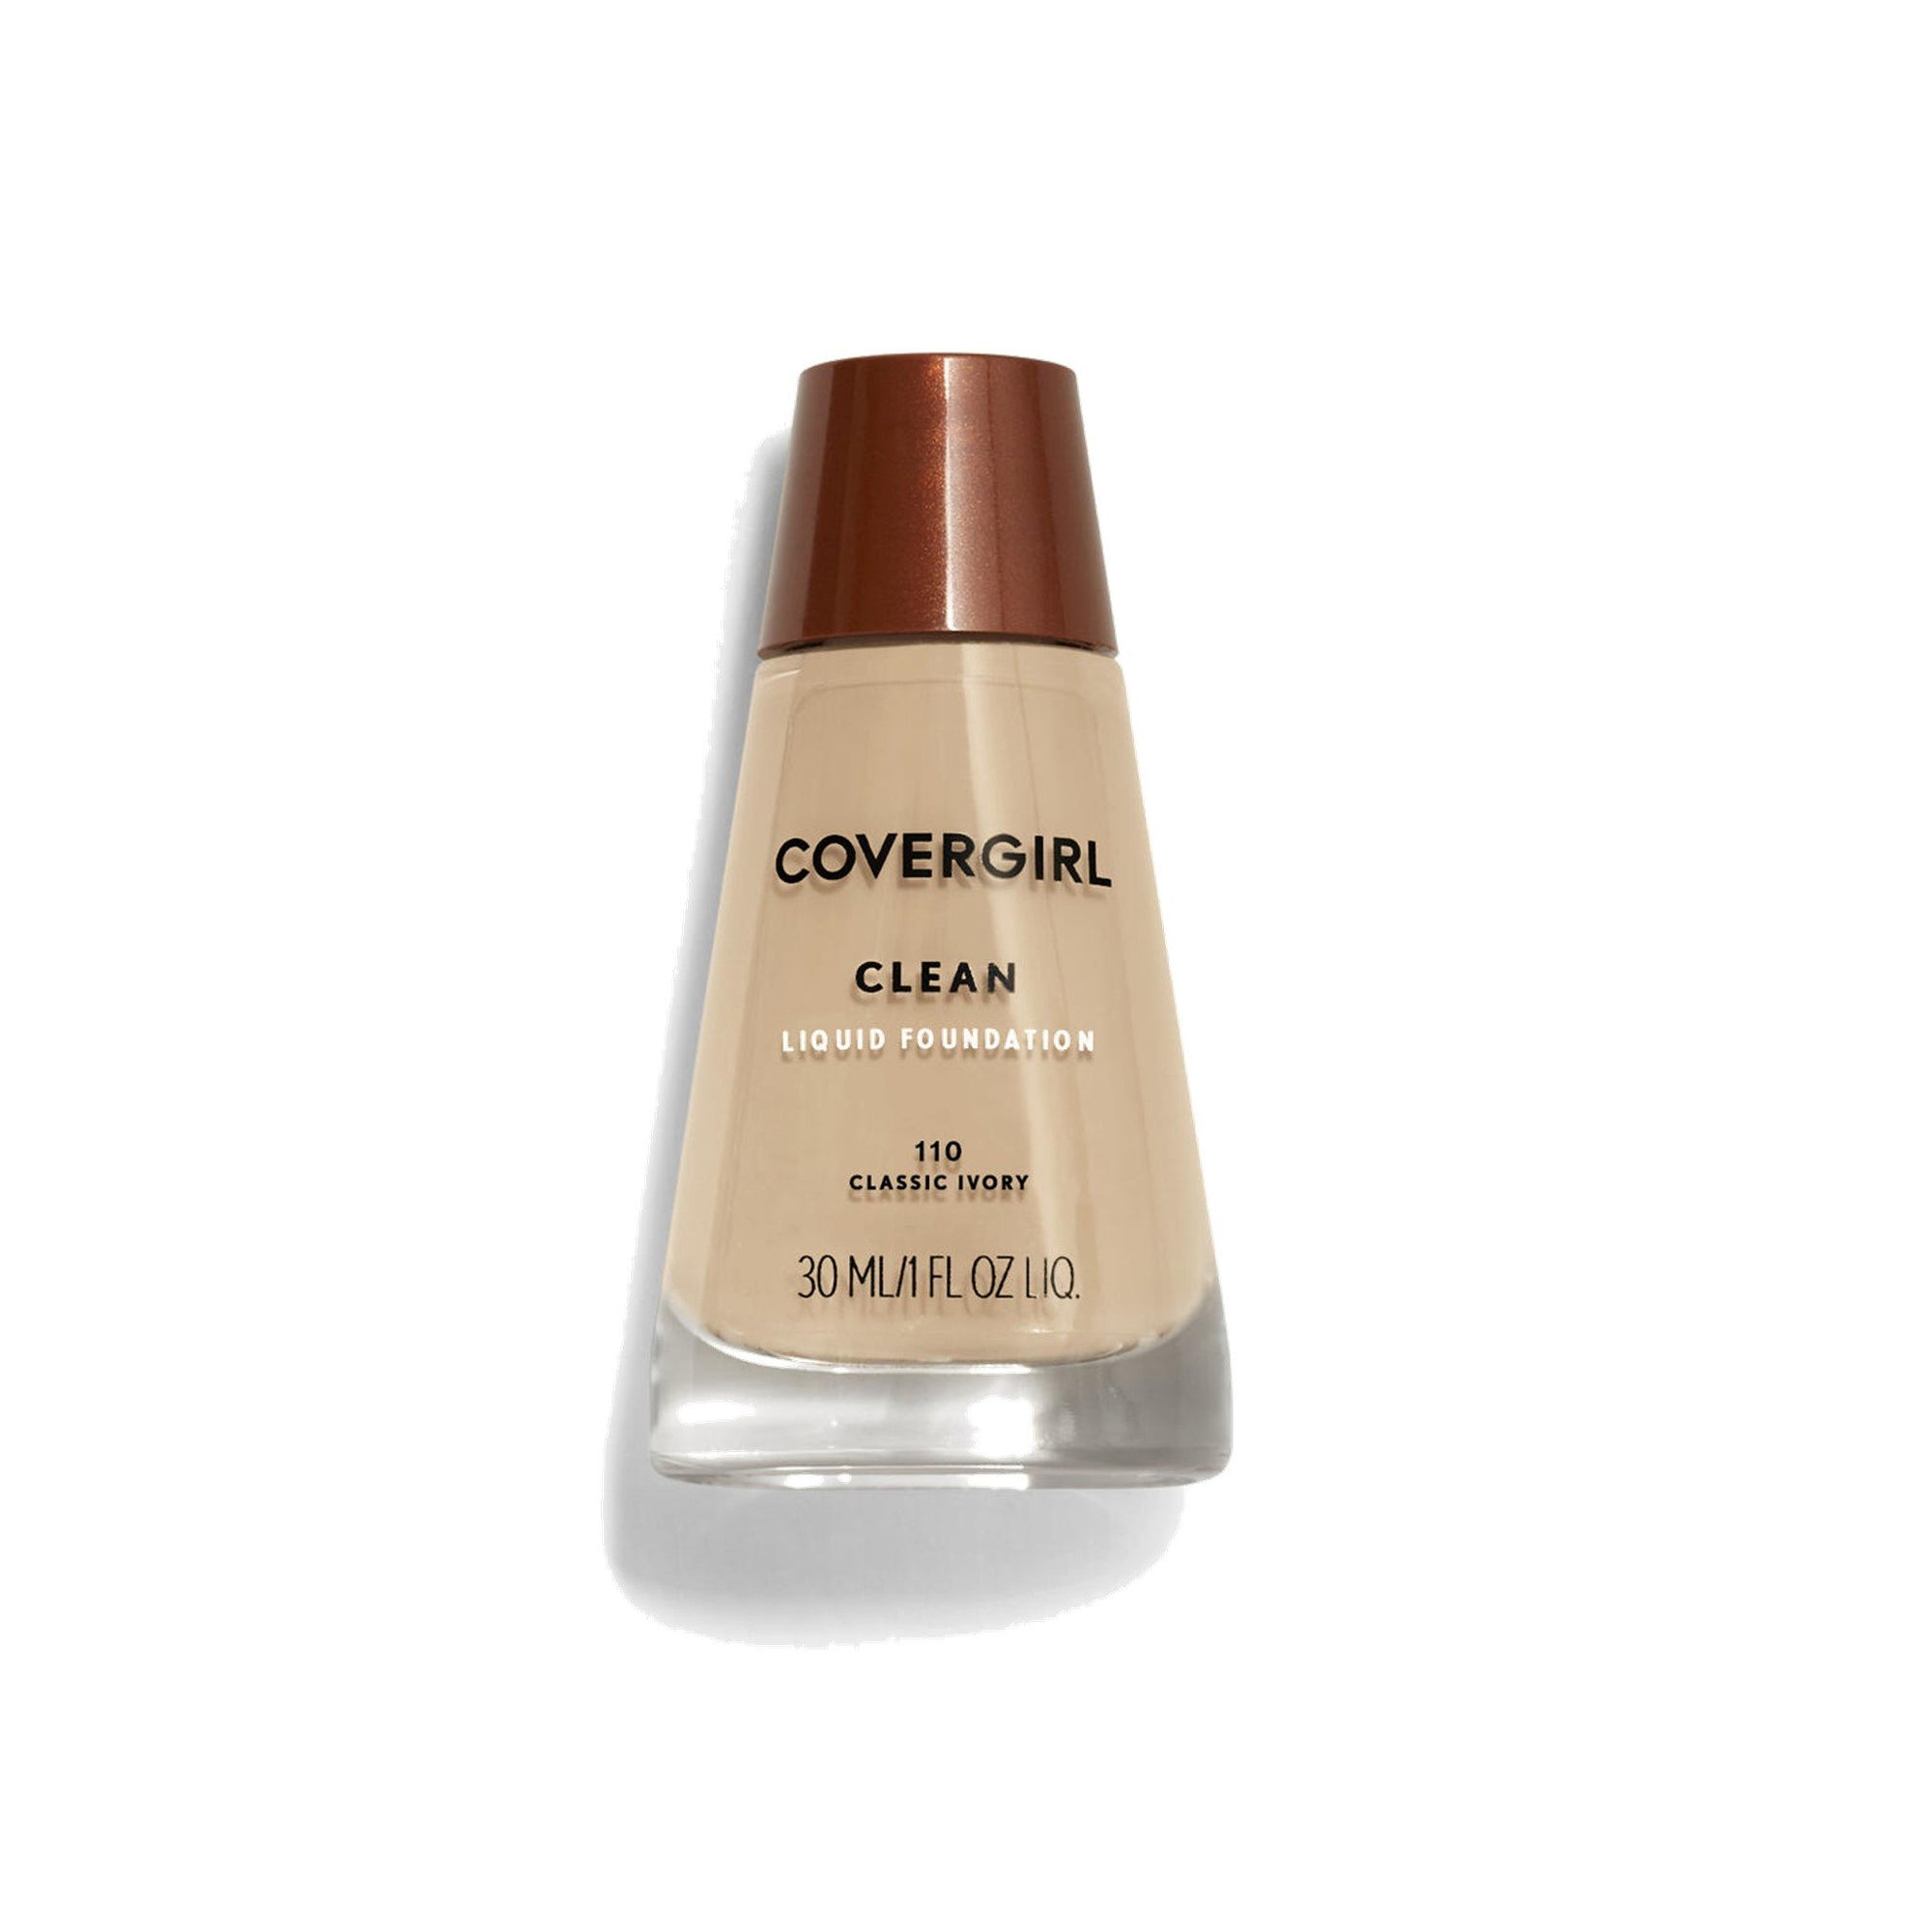 Covergirl Clean Liquid Foundation